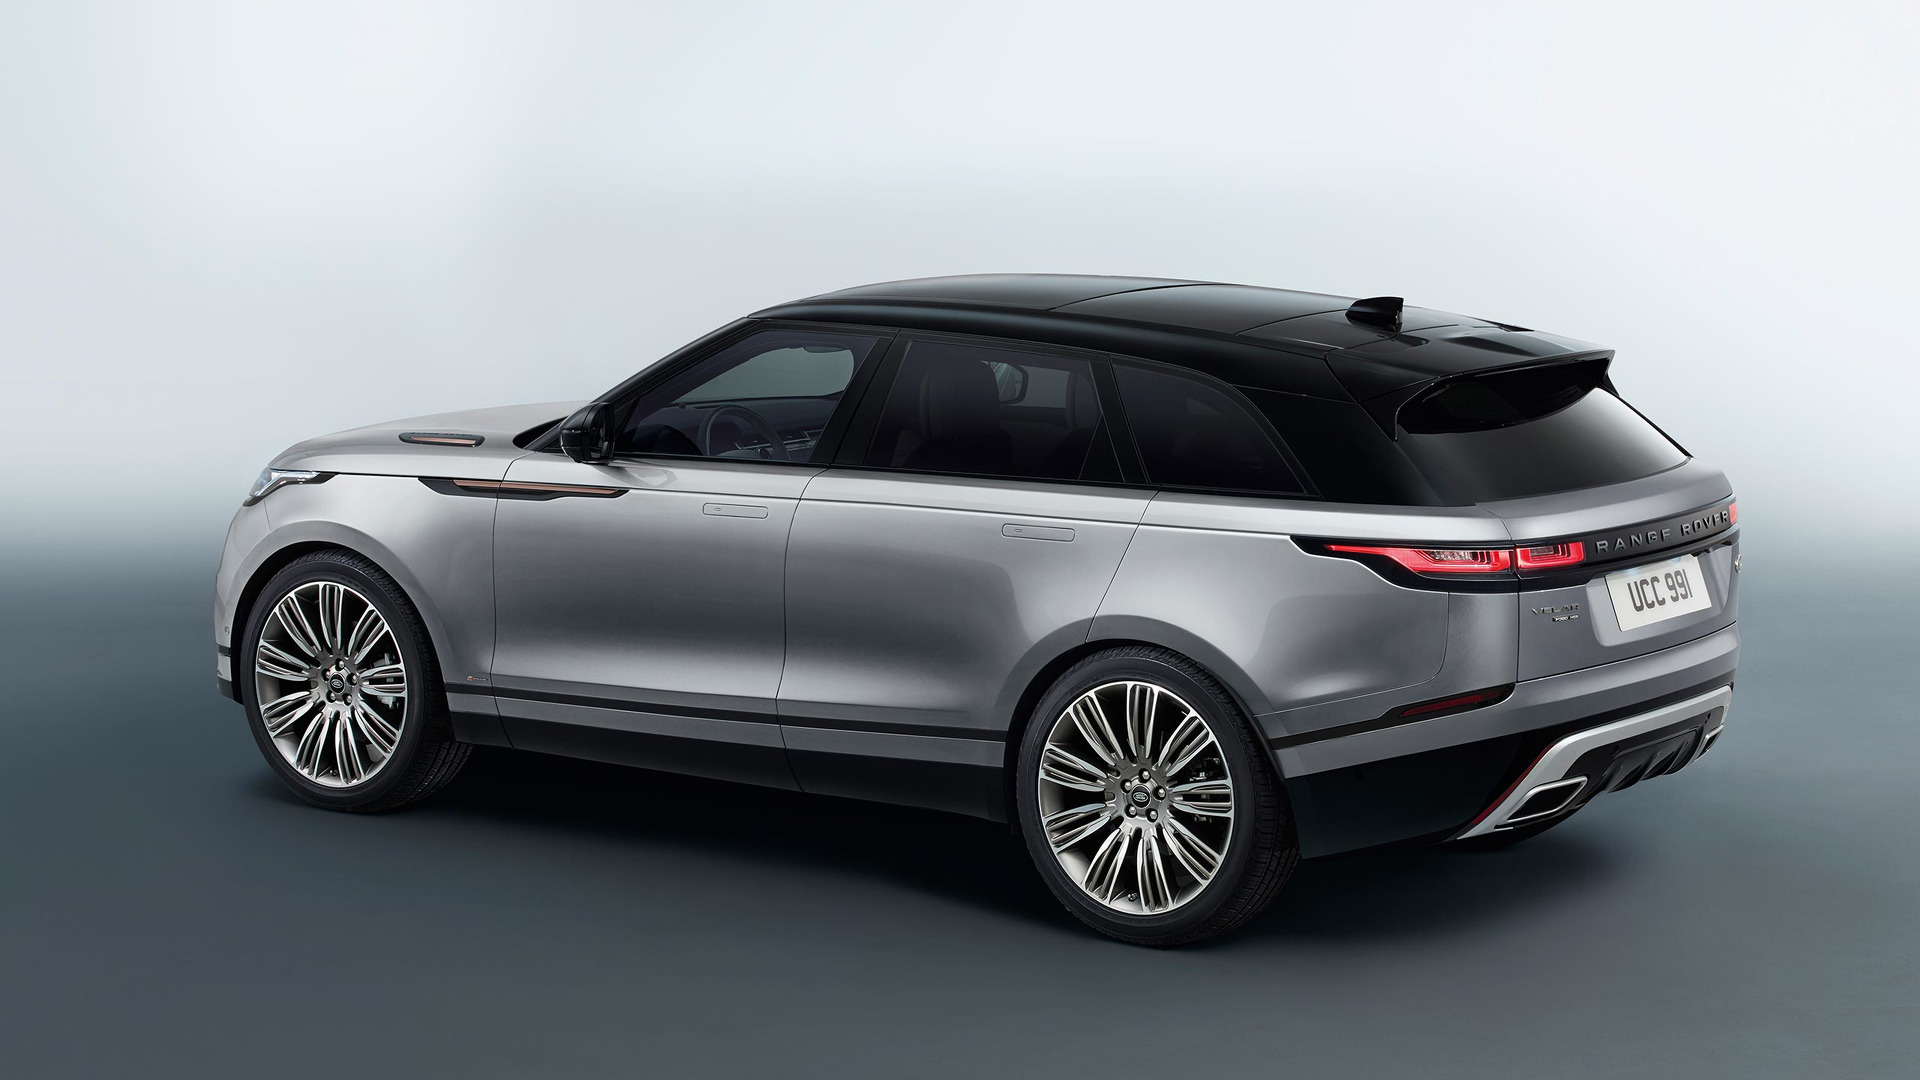 the most expensive land rover range rover velar costs 103 265. Black Bedroom Furniture Sets. Home Design Ideas